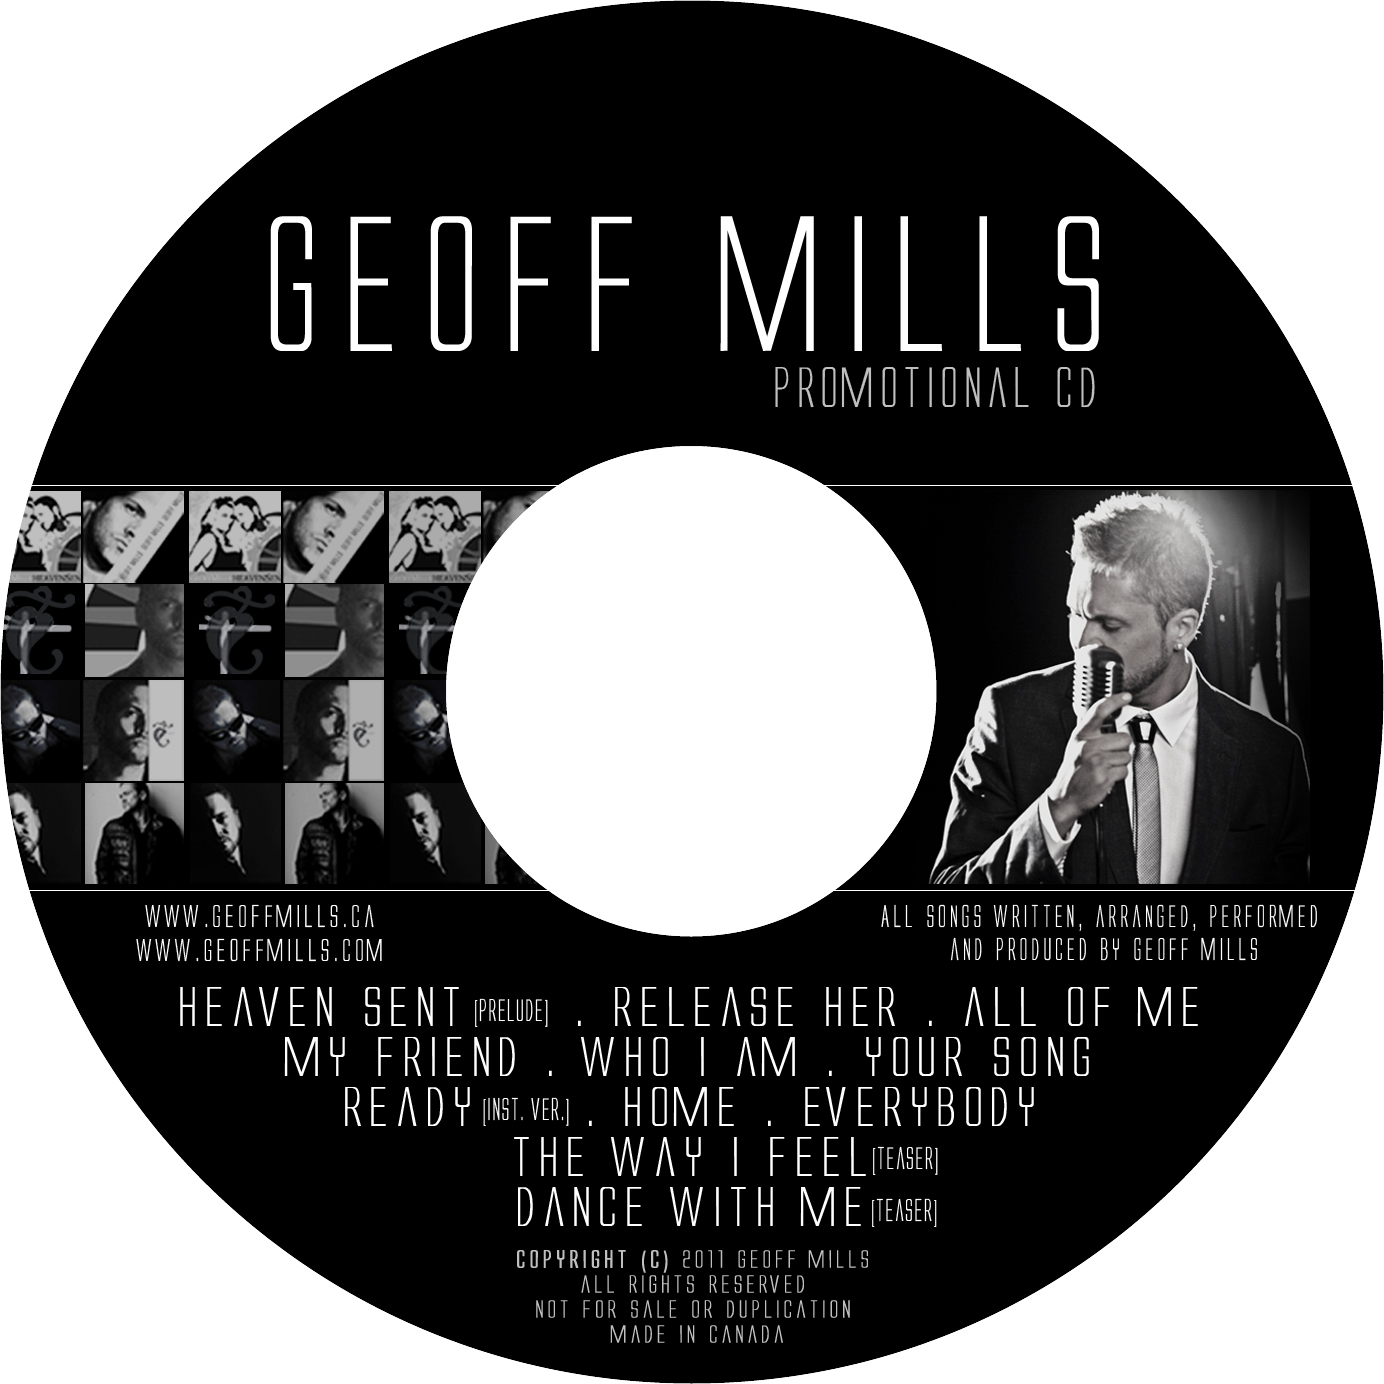 Geoff Mills - Promotional CD [NOV11]